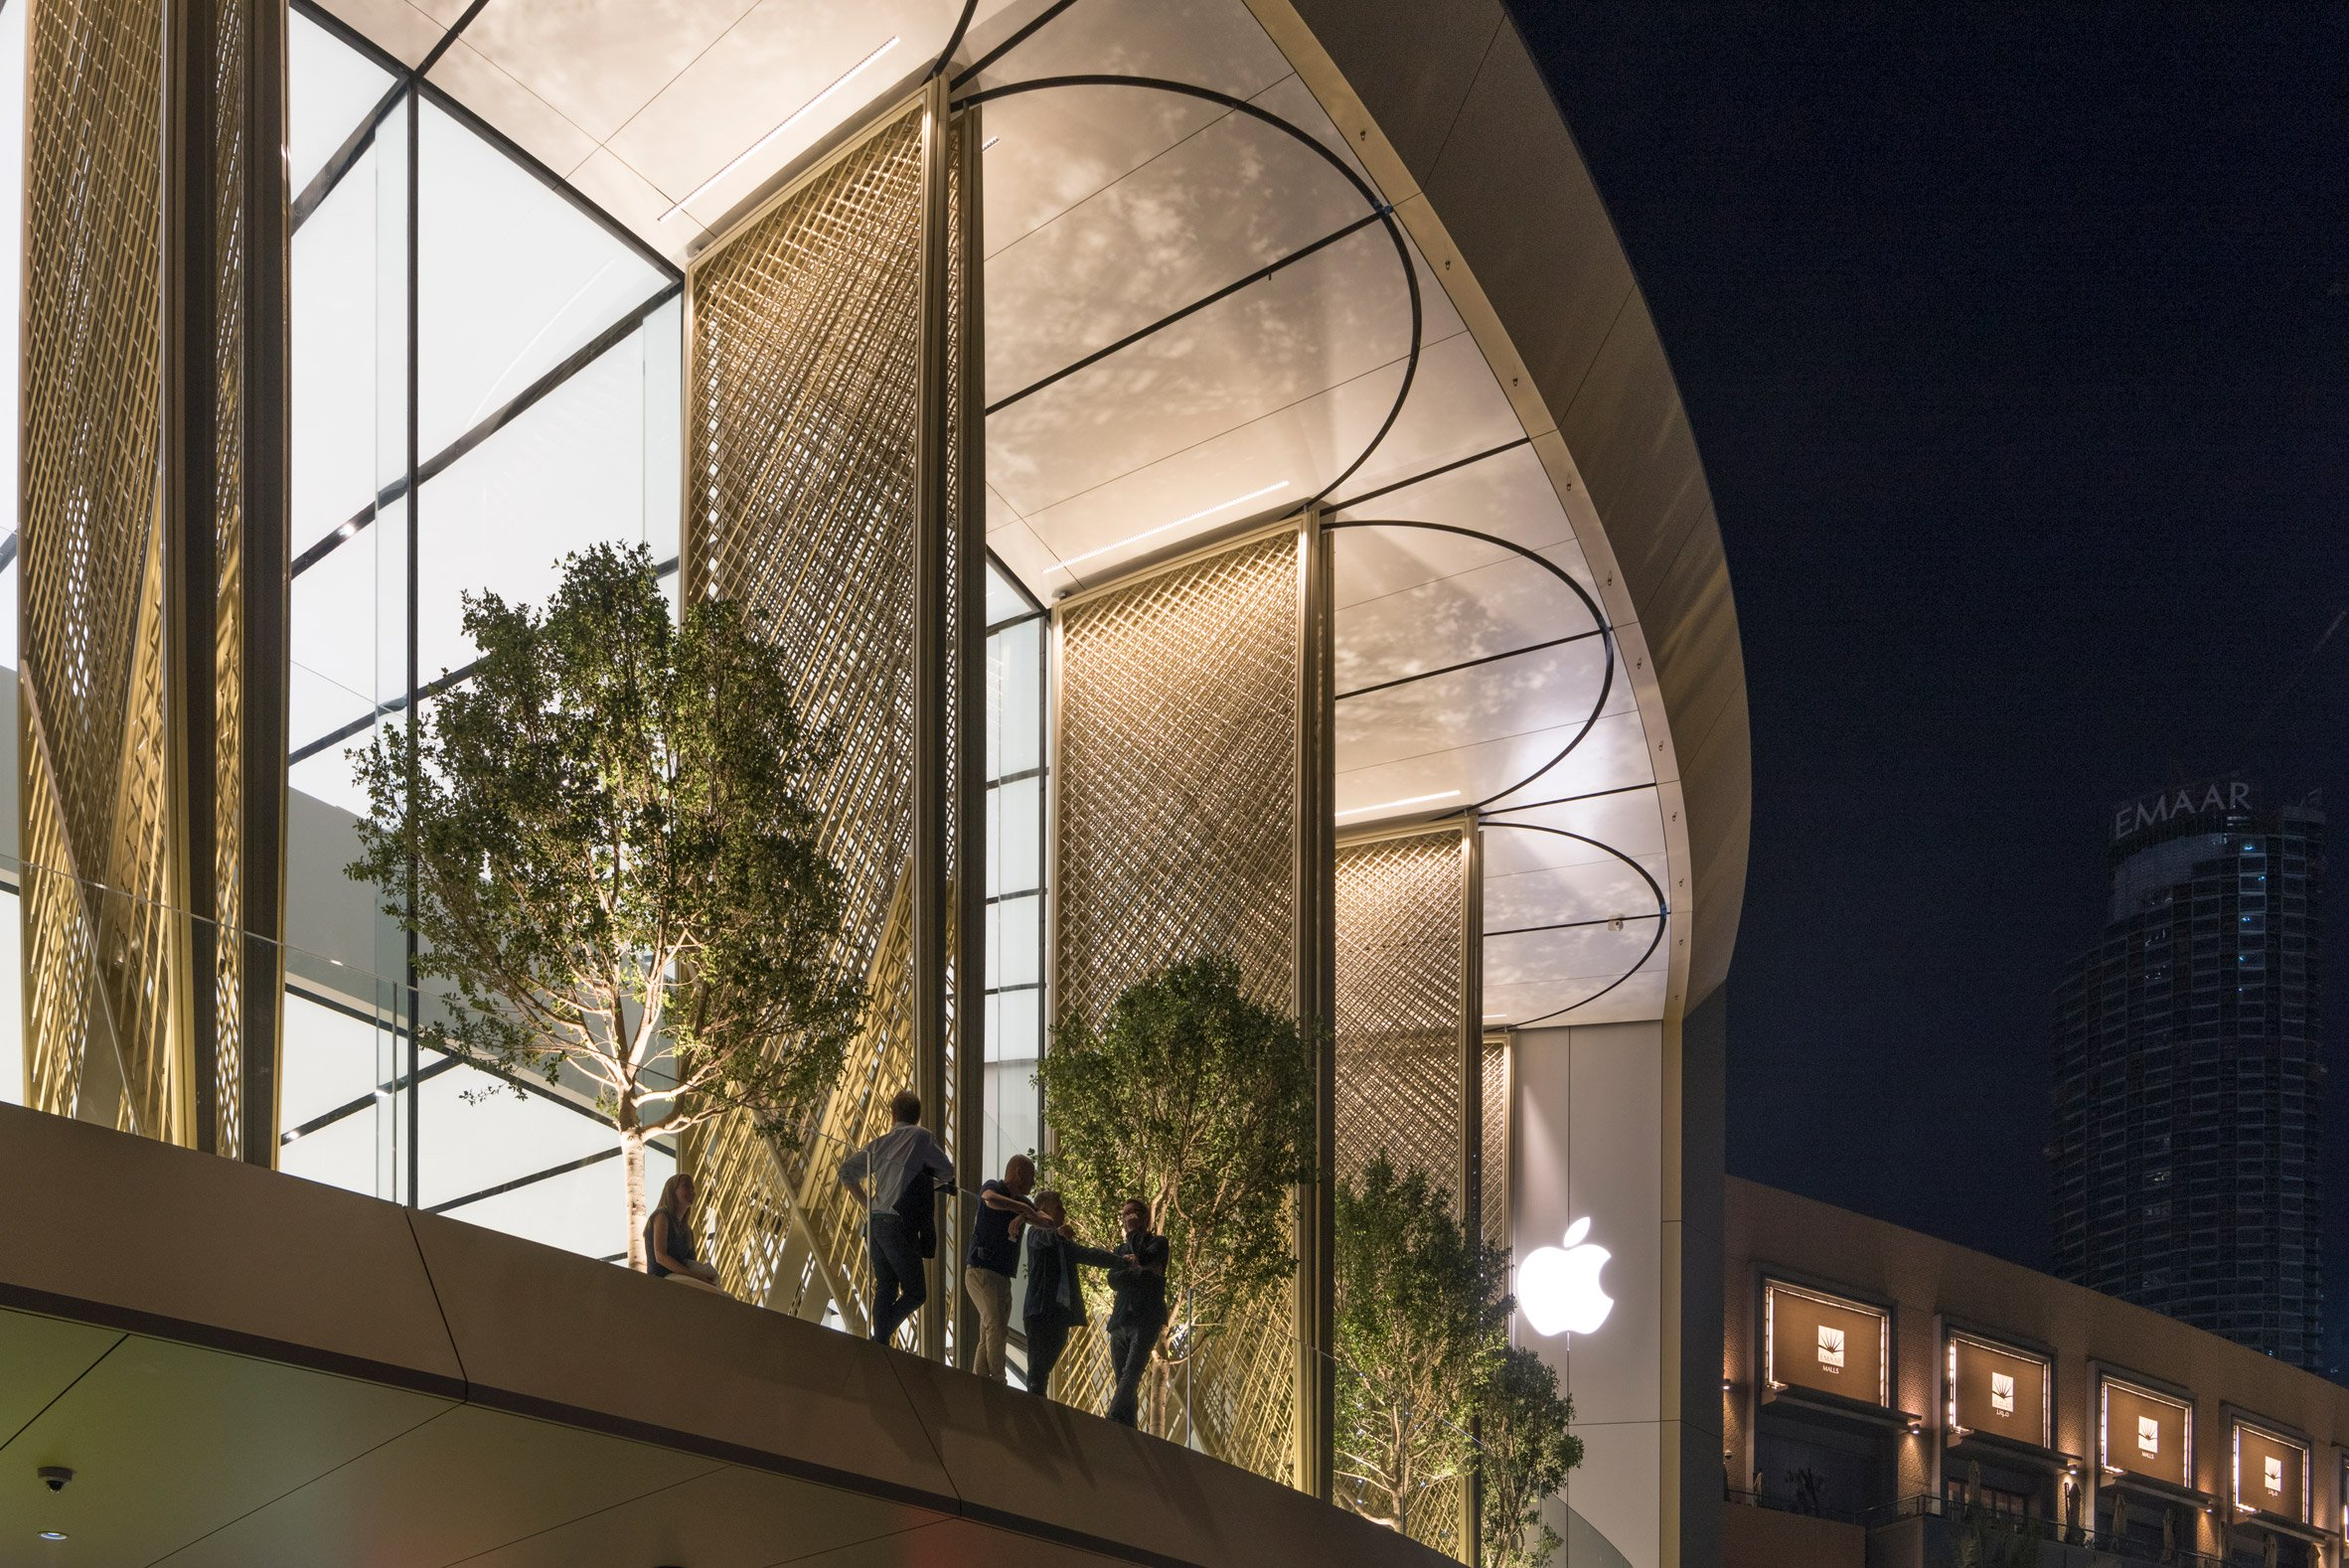 foster + partners Studio Foster + Partners Adds Carbon-Fibre Covers to Dubai Apple Store Studio Foster Partners Adds Carbon Fibre Covers to Dubai Apple Store 2